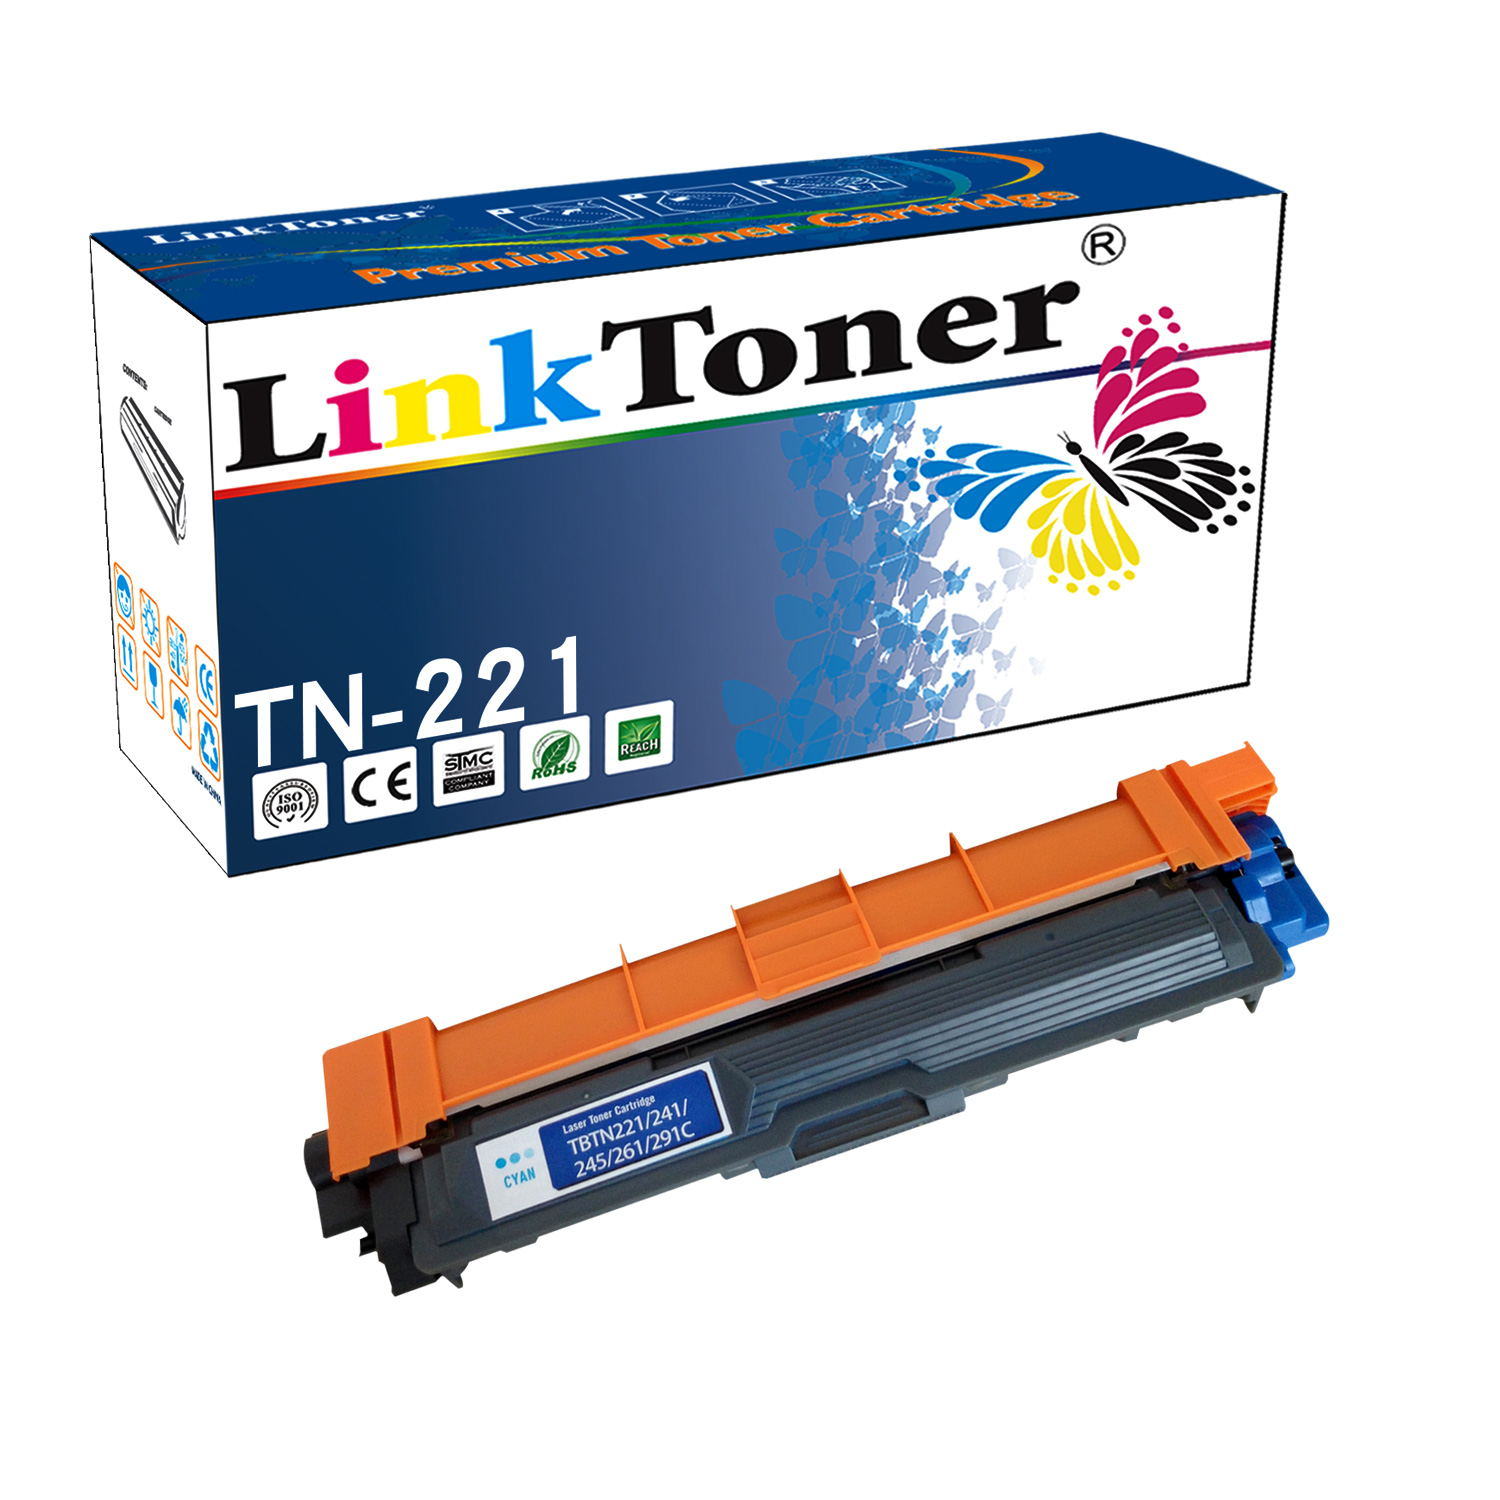 LinkToner TN221 Compatible Brother Toner Cartridge TN-221 BK for Brother Printer MFC-9130CW, 9140CDN, 9330, 9335